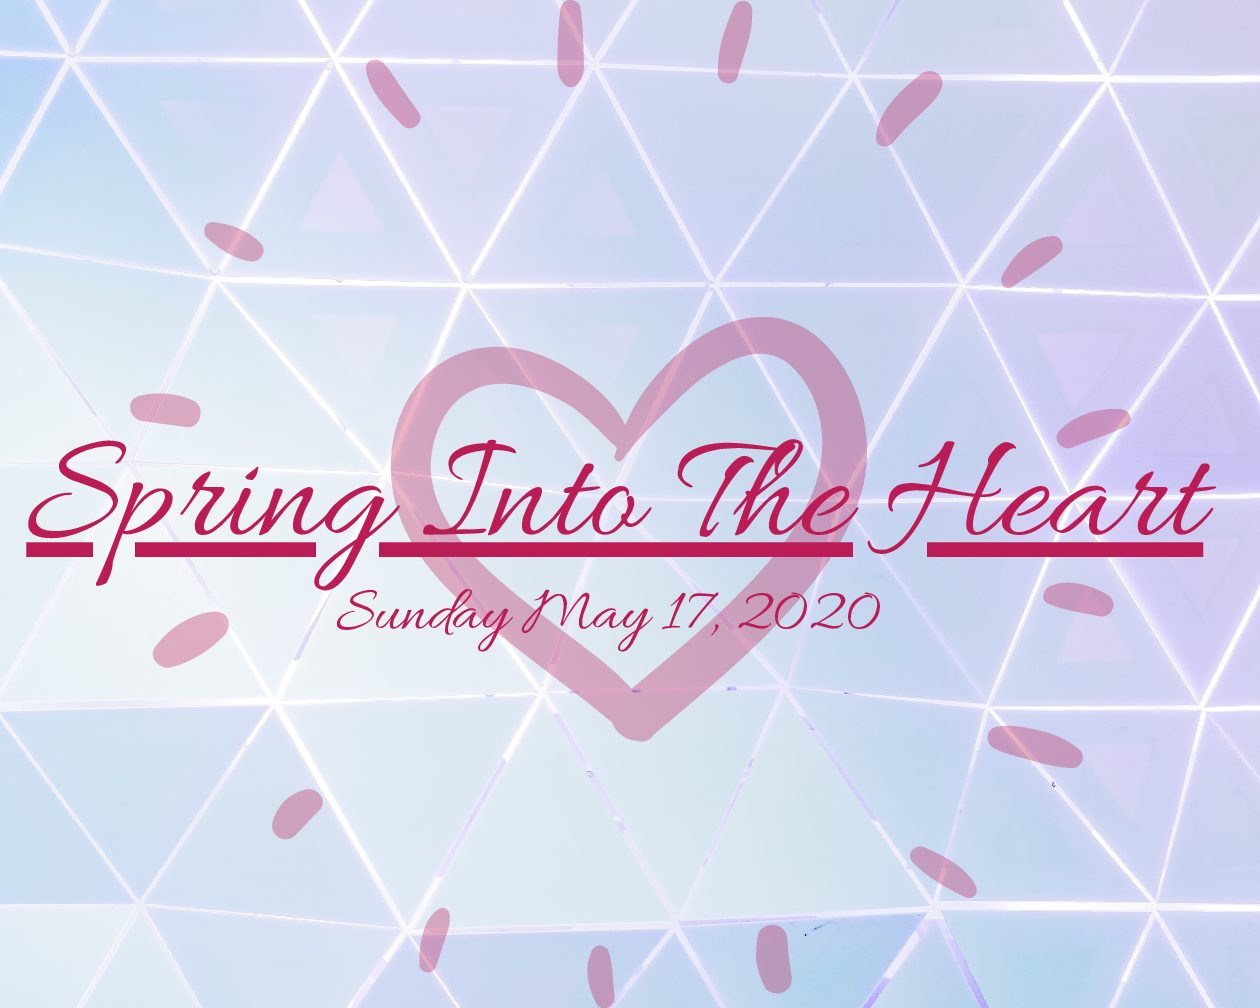 Spring into the Heart